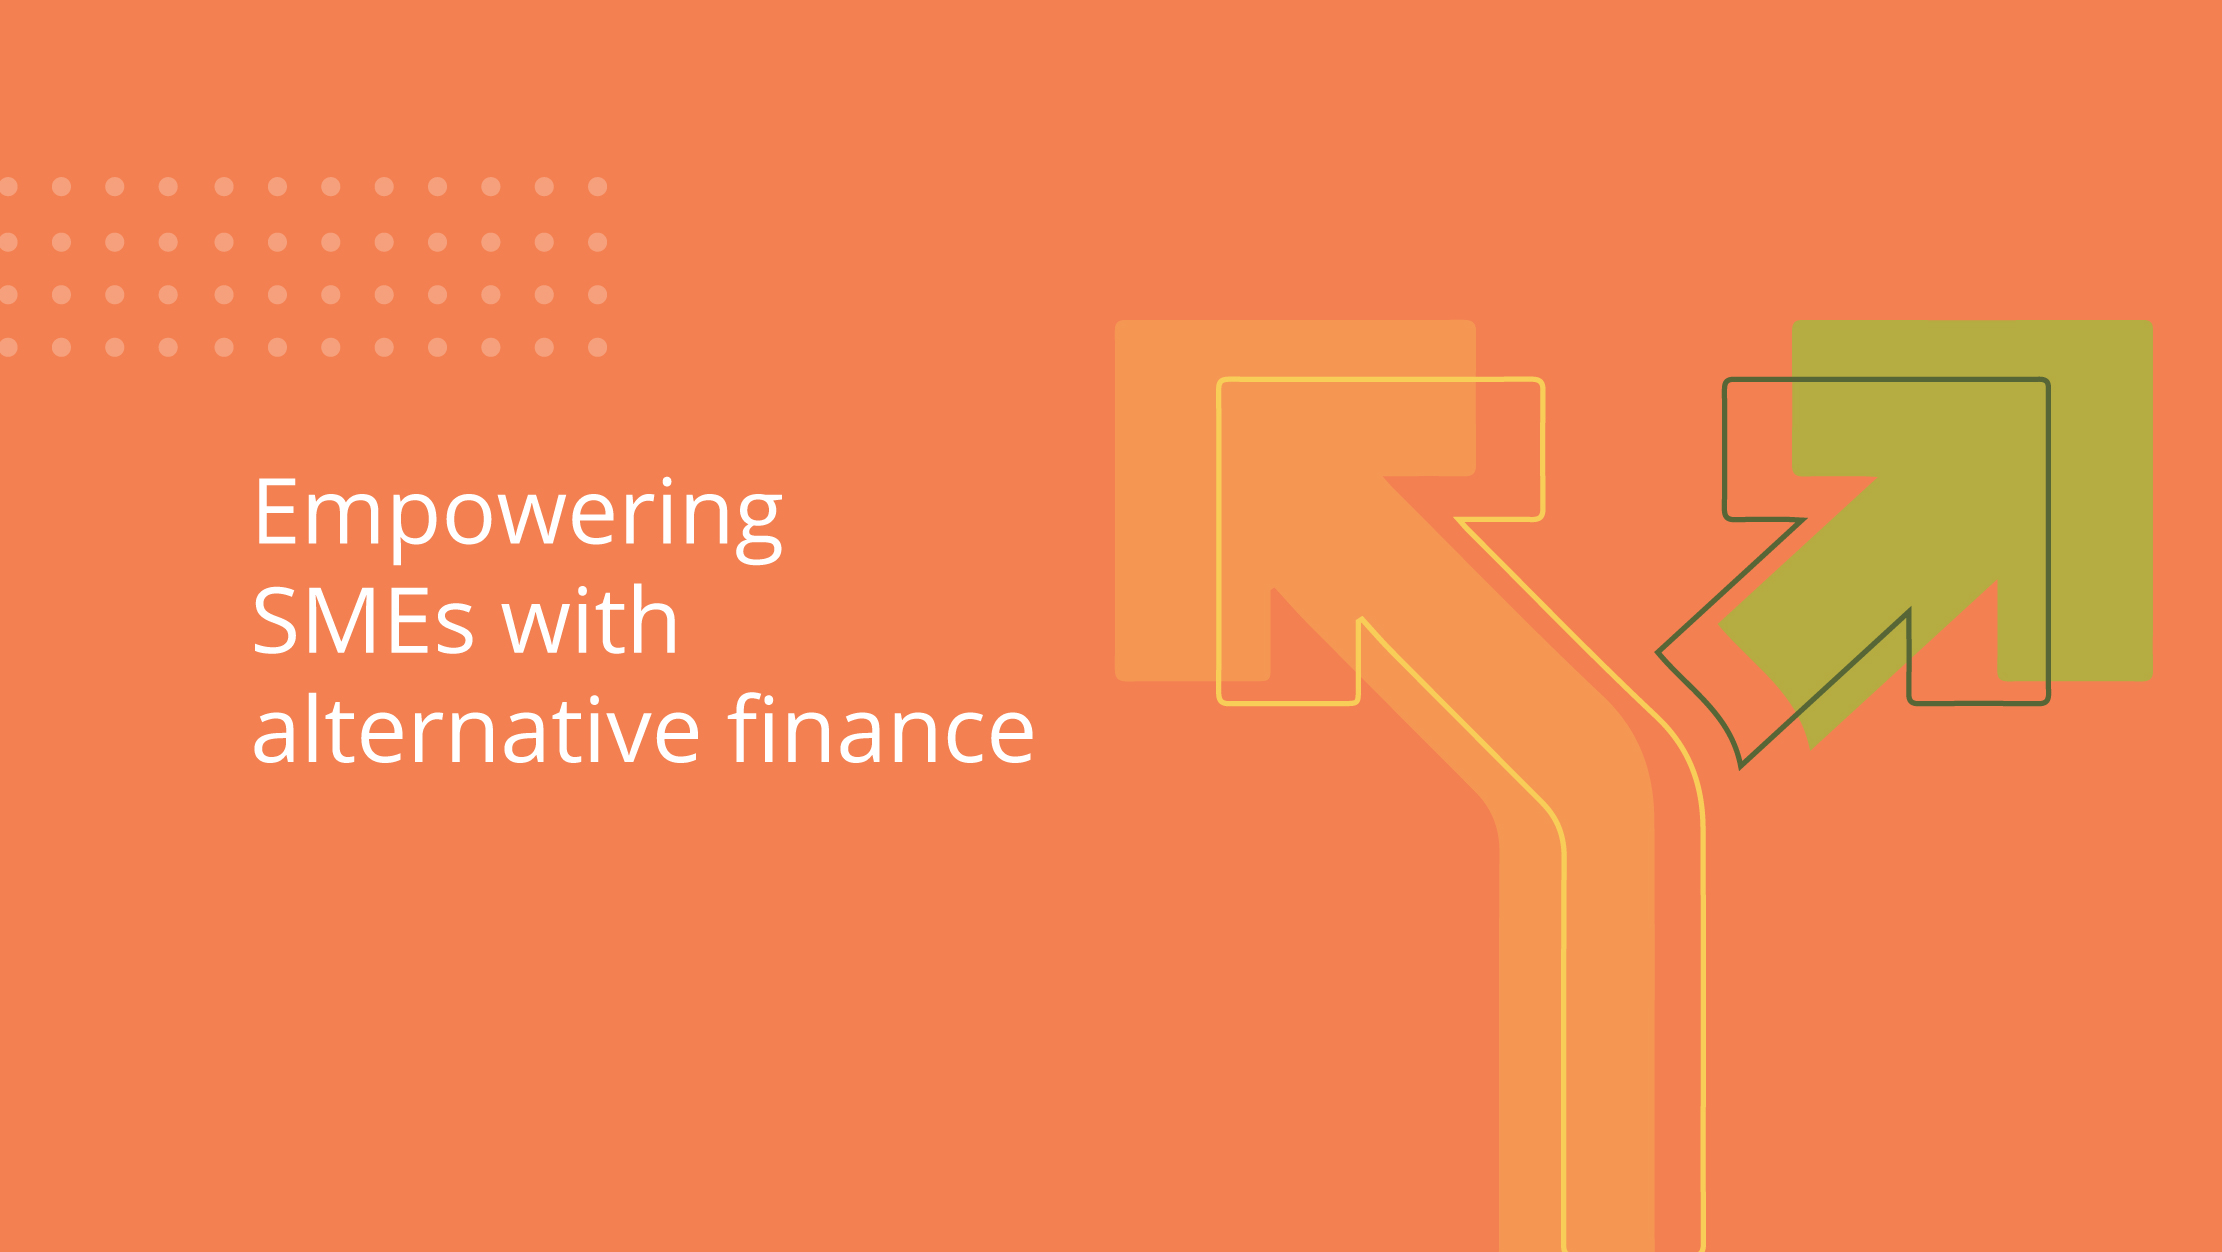 Empowering SMEs with alternative finance